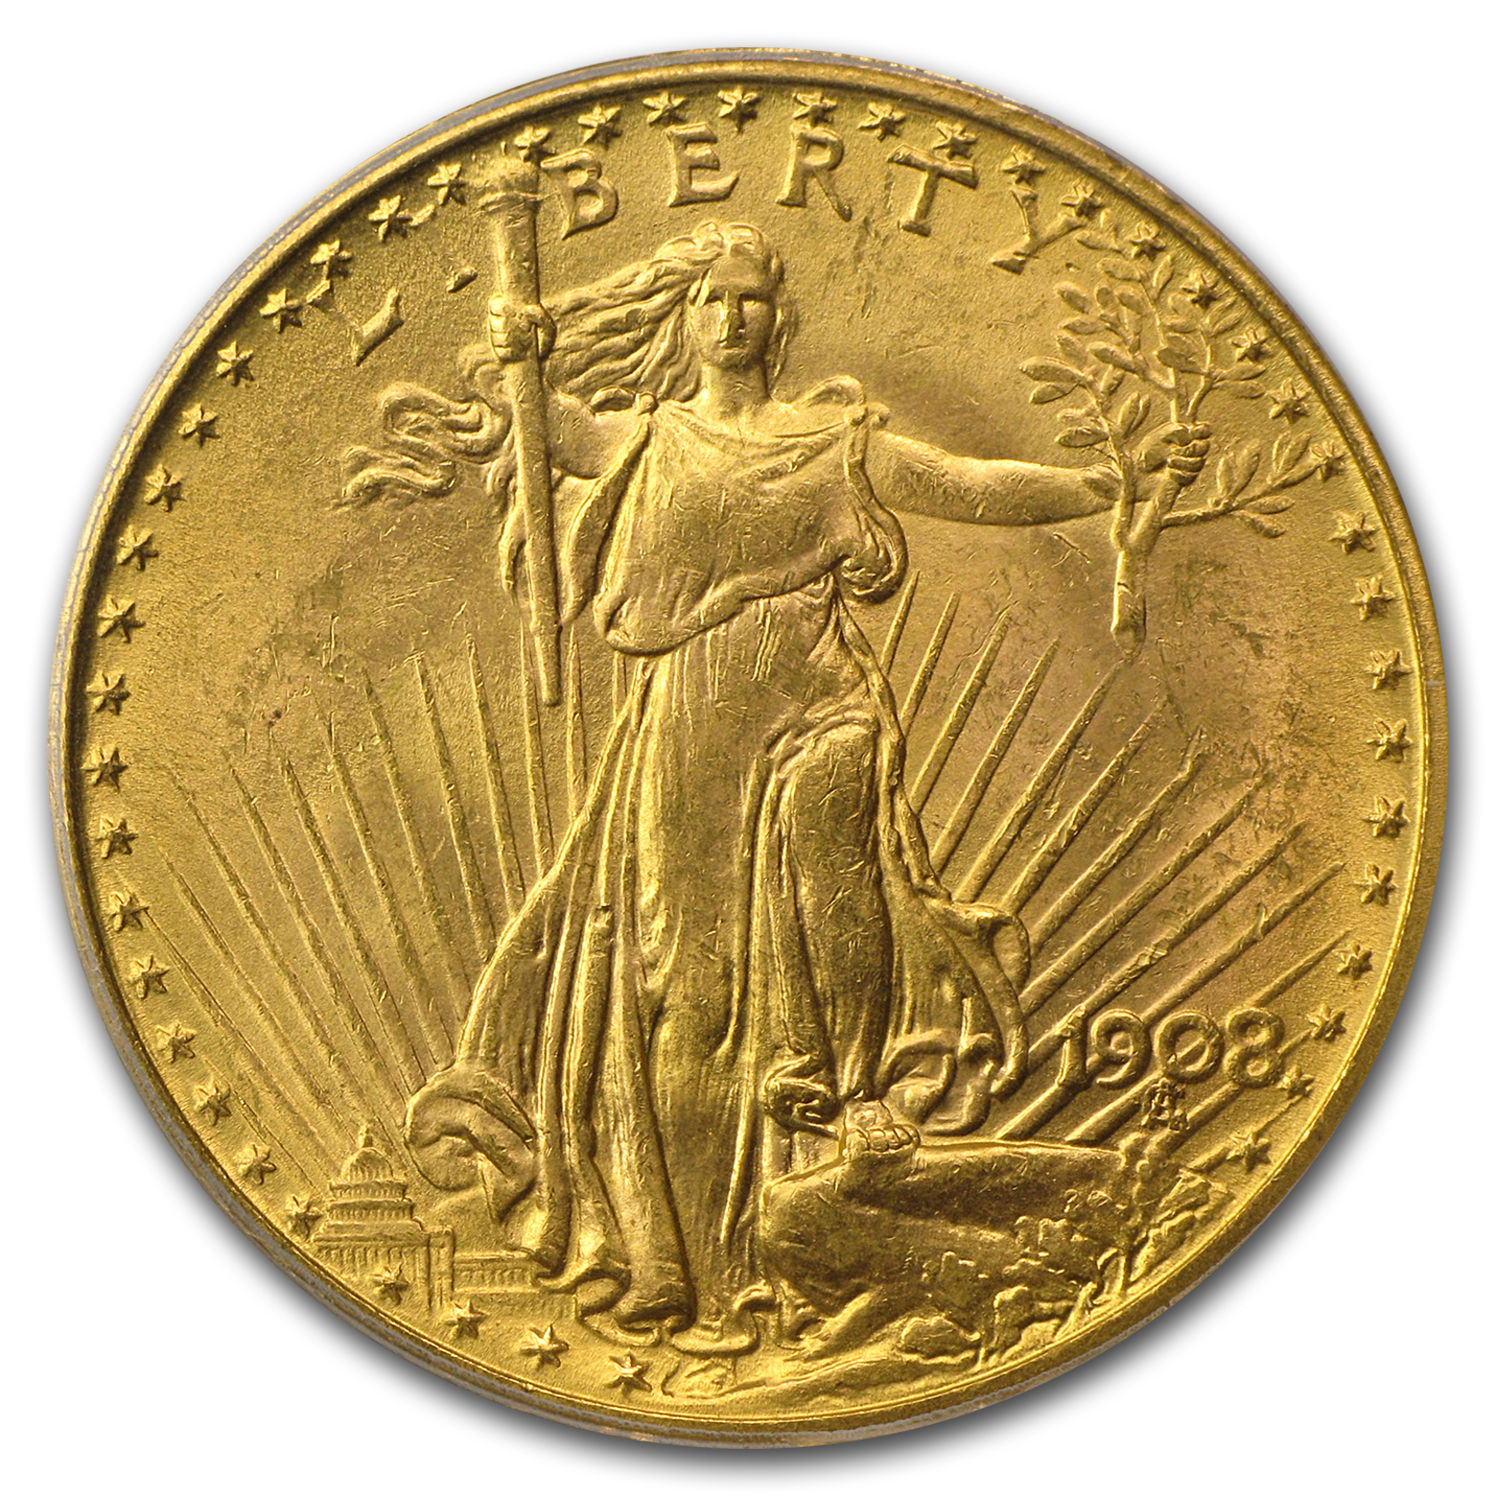 1908 $20 St. Gaudens Gold Double Eagle No Motto MS-63 PCGS (CAC)